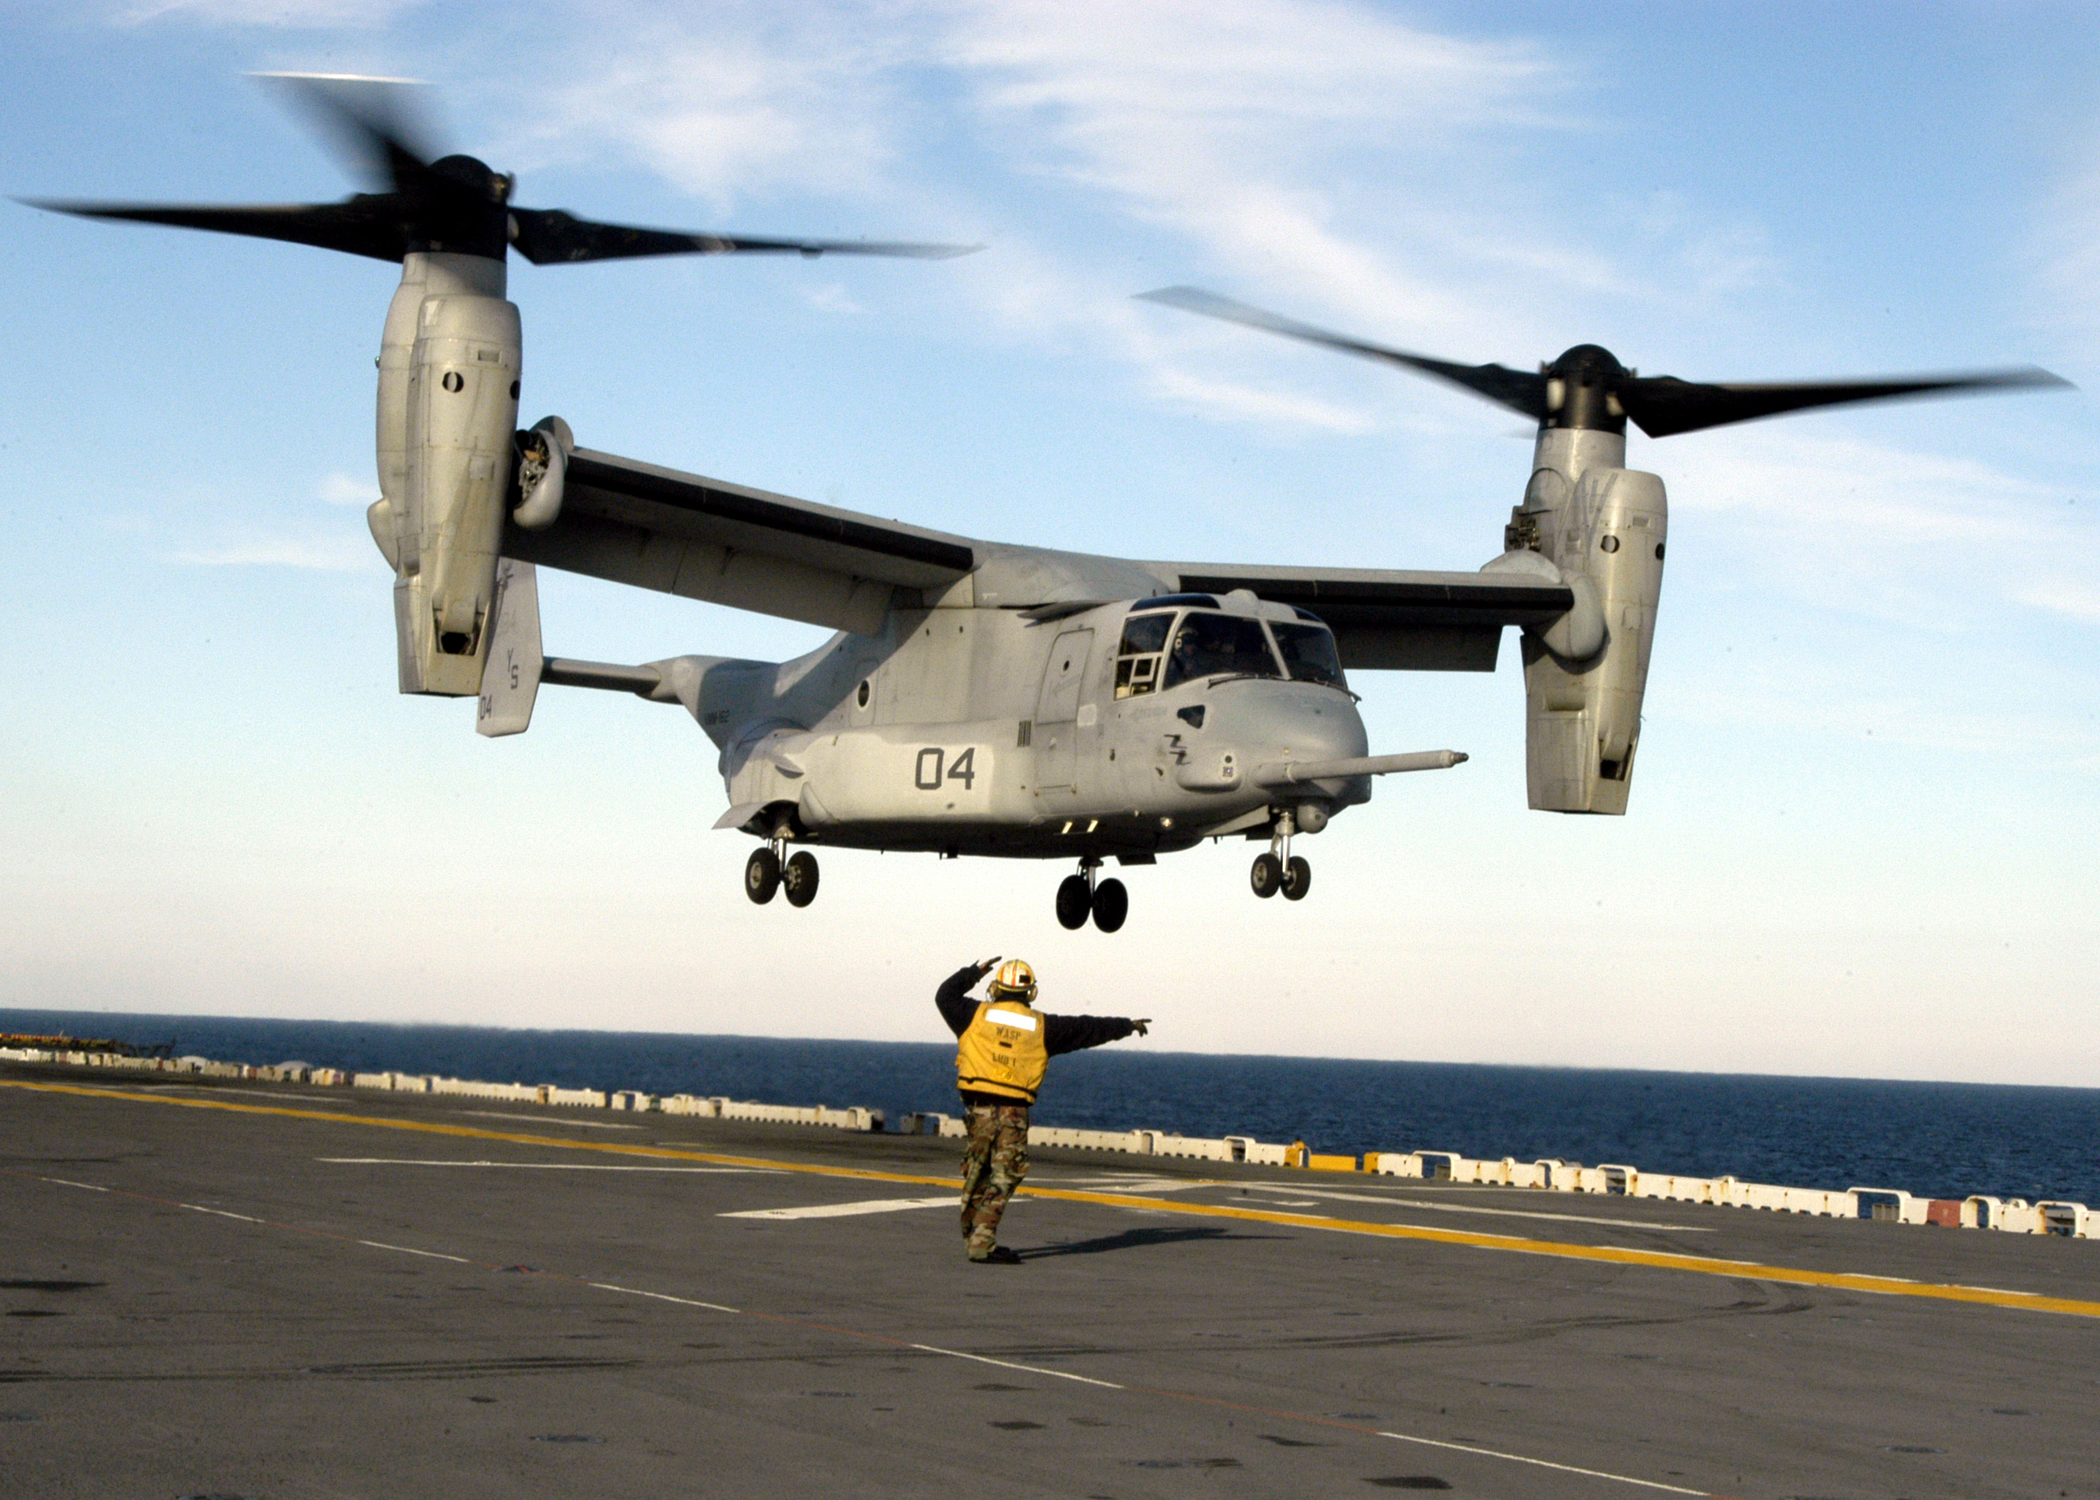 blackhawk for sale helicopter with File Us Navy 061206 N 0458e 070 A Mv 22 Osprey Practice Touch And Go Landings On The Flight Deck Of Multipurpose  Hibious Assault Ship Uss Wasp  Lhd 1  For Deck Landing Qualifications on 6m Bf Austria Air Force Sikorsky S 70a Black Hawk further Airi landing also Yf 23 Black Widow Tactical Fighter moreover File Israeli Air Force  UH 60 Black Hawk likewise File Sikorsky S 70 Blackhawk  Hkp 16A  161229 04  8364671659.